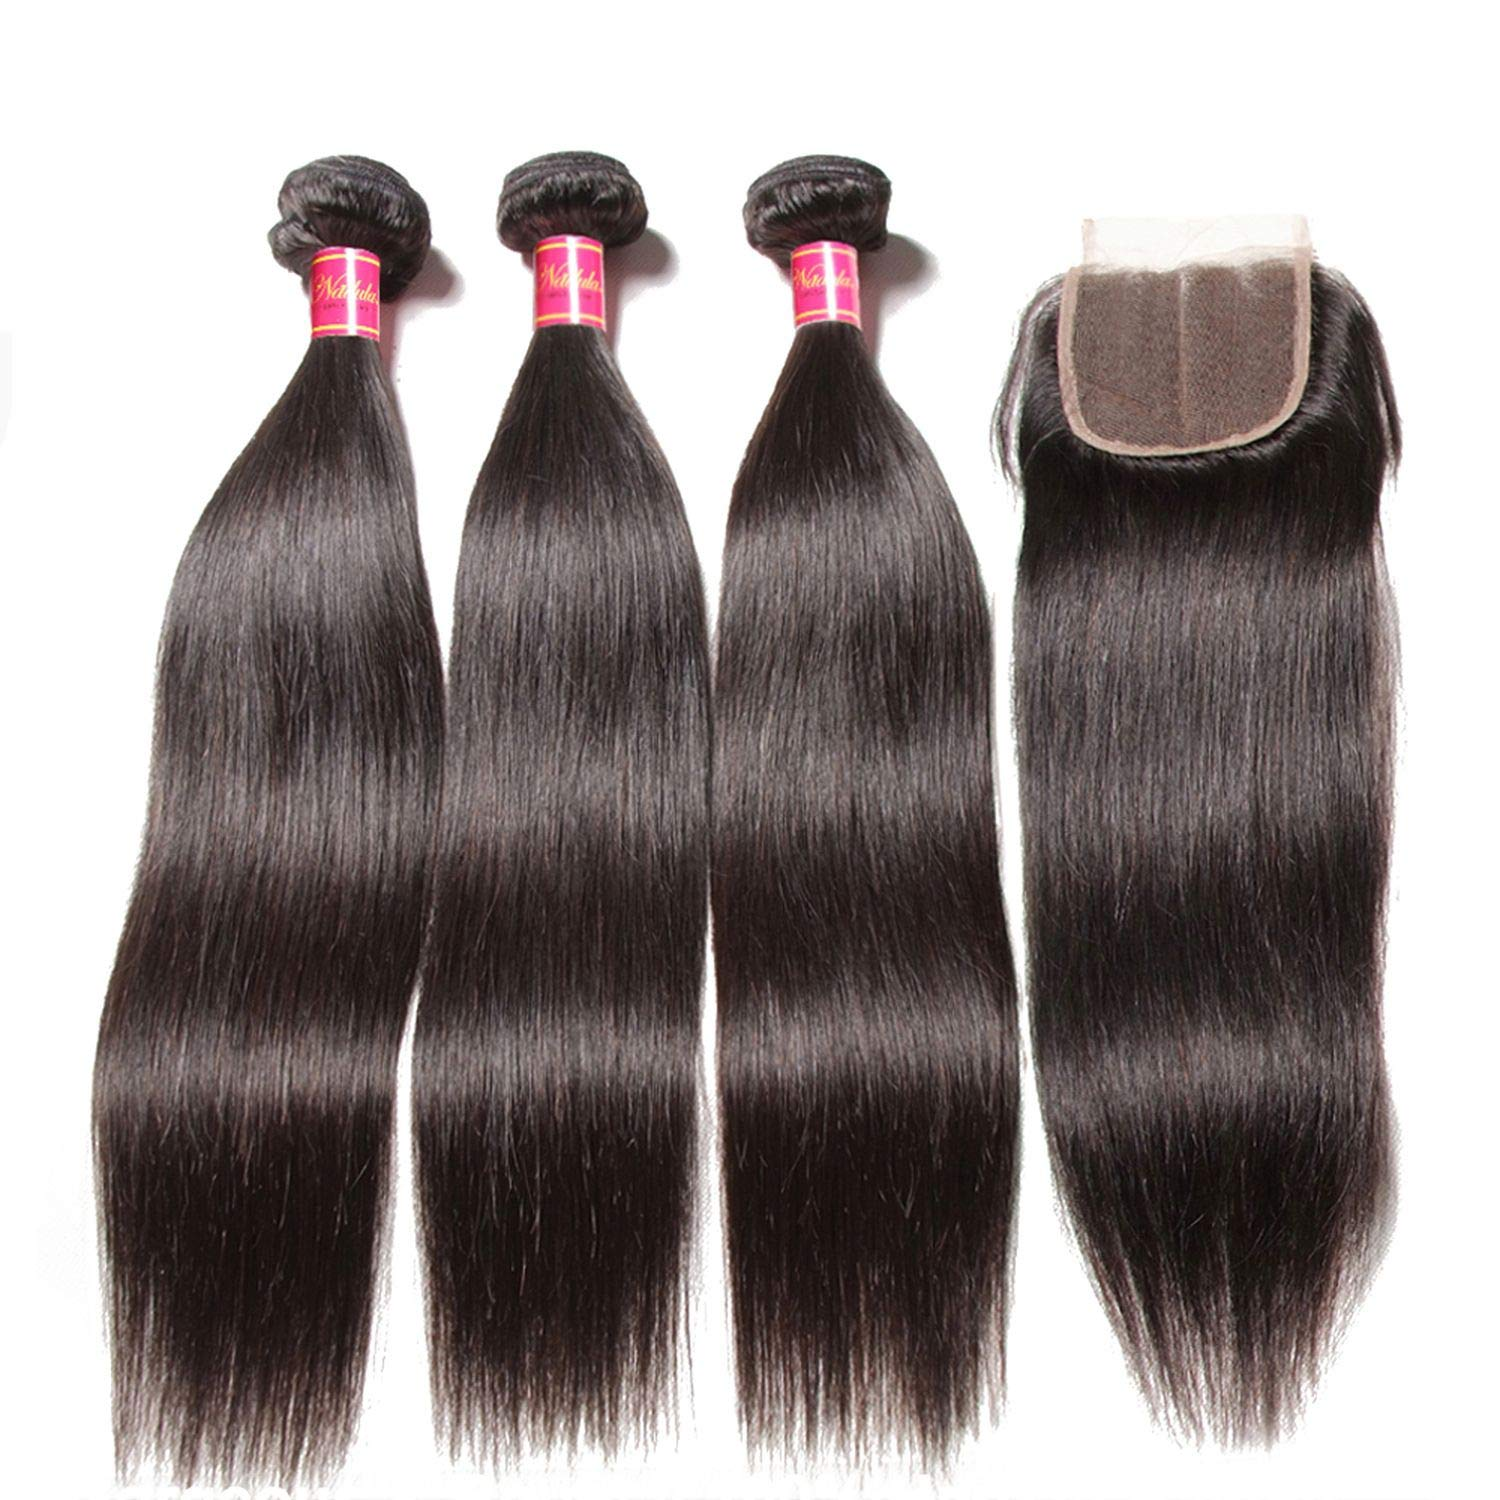 3 Bundles Brazilian Straight Hair With Closure 44 Lace Closure With Human Hair Weaves Natural Black Color Remy Hair,12 14 14 & Closure10,Natural Color,Middle Part